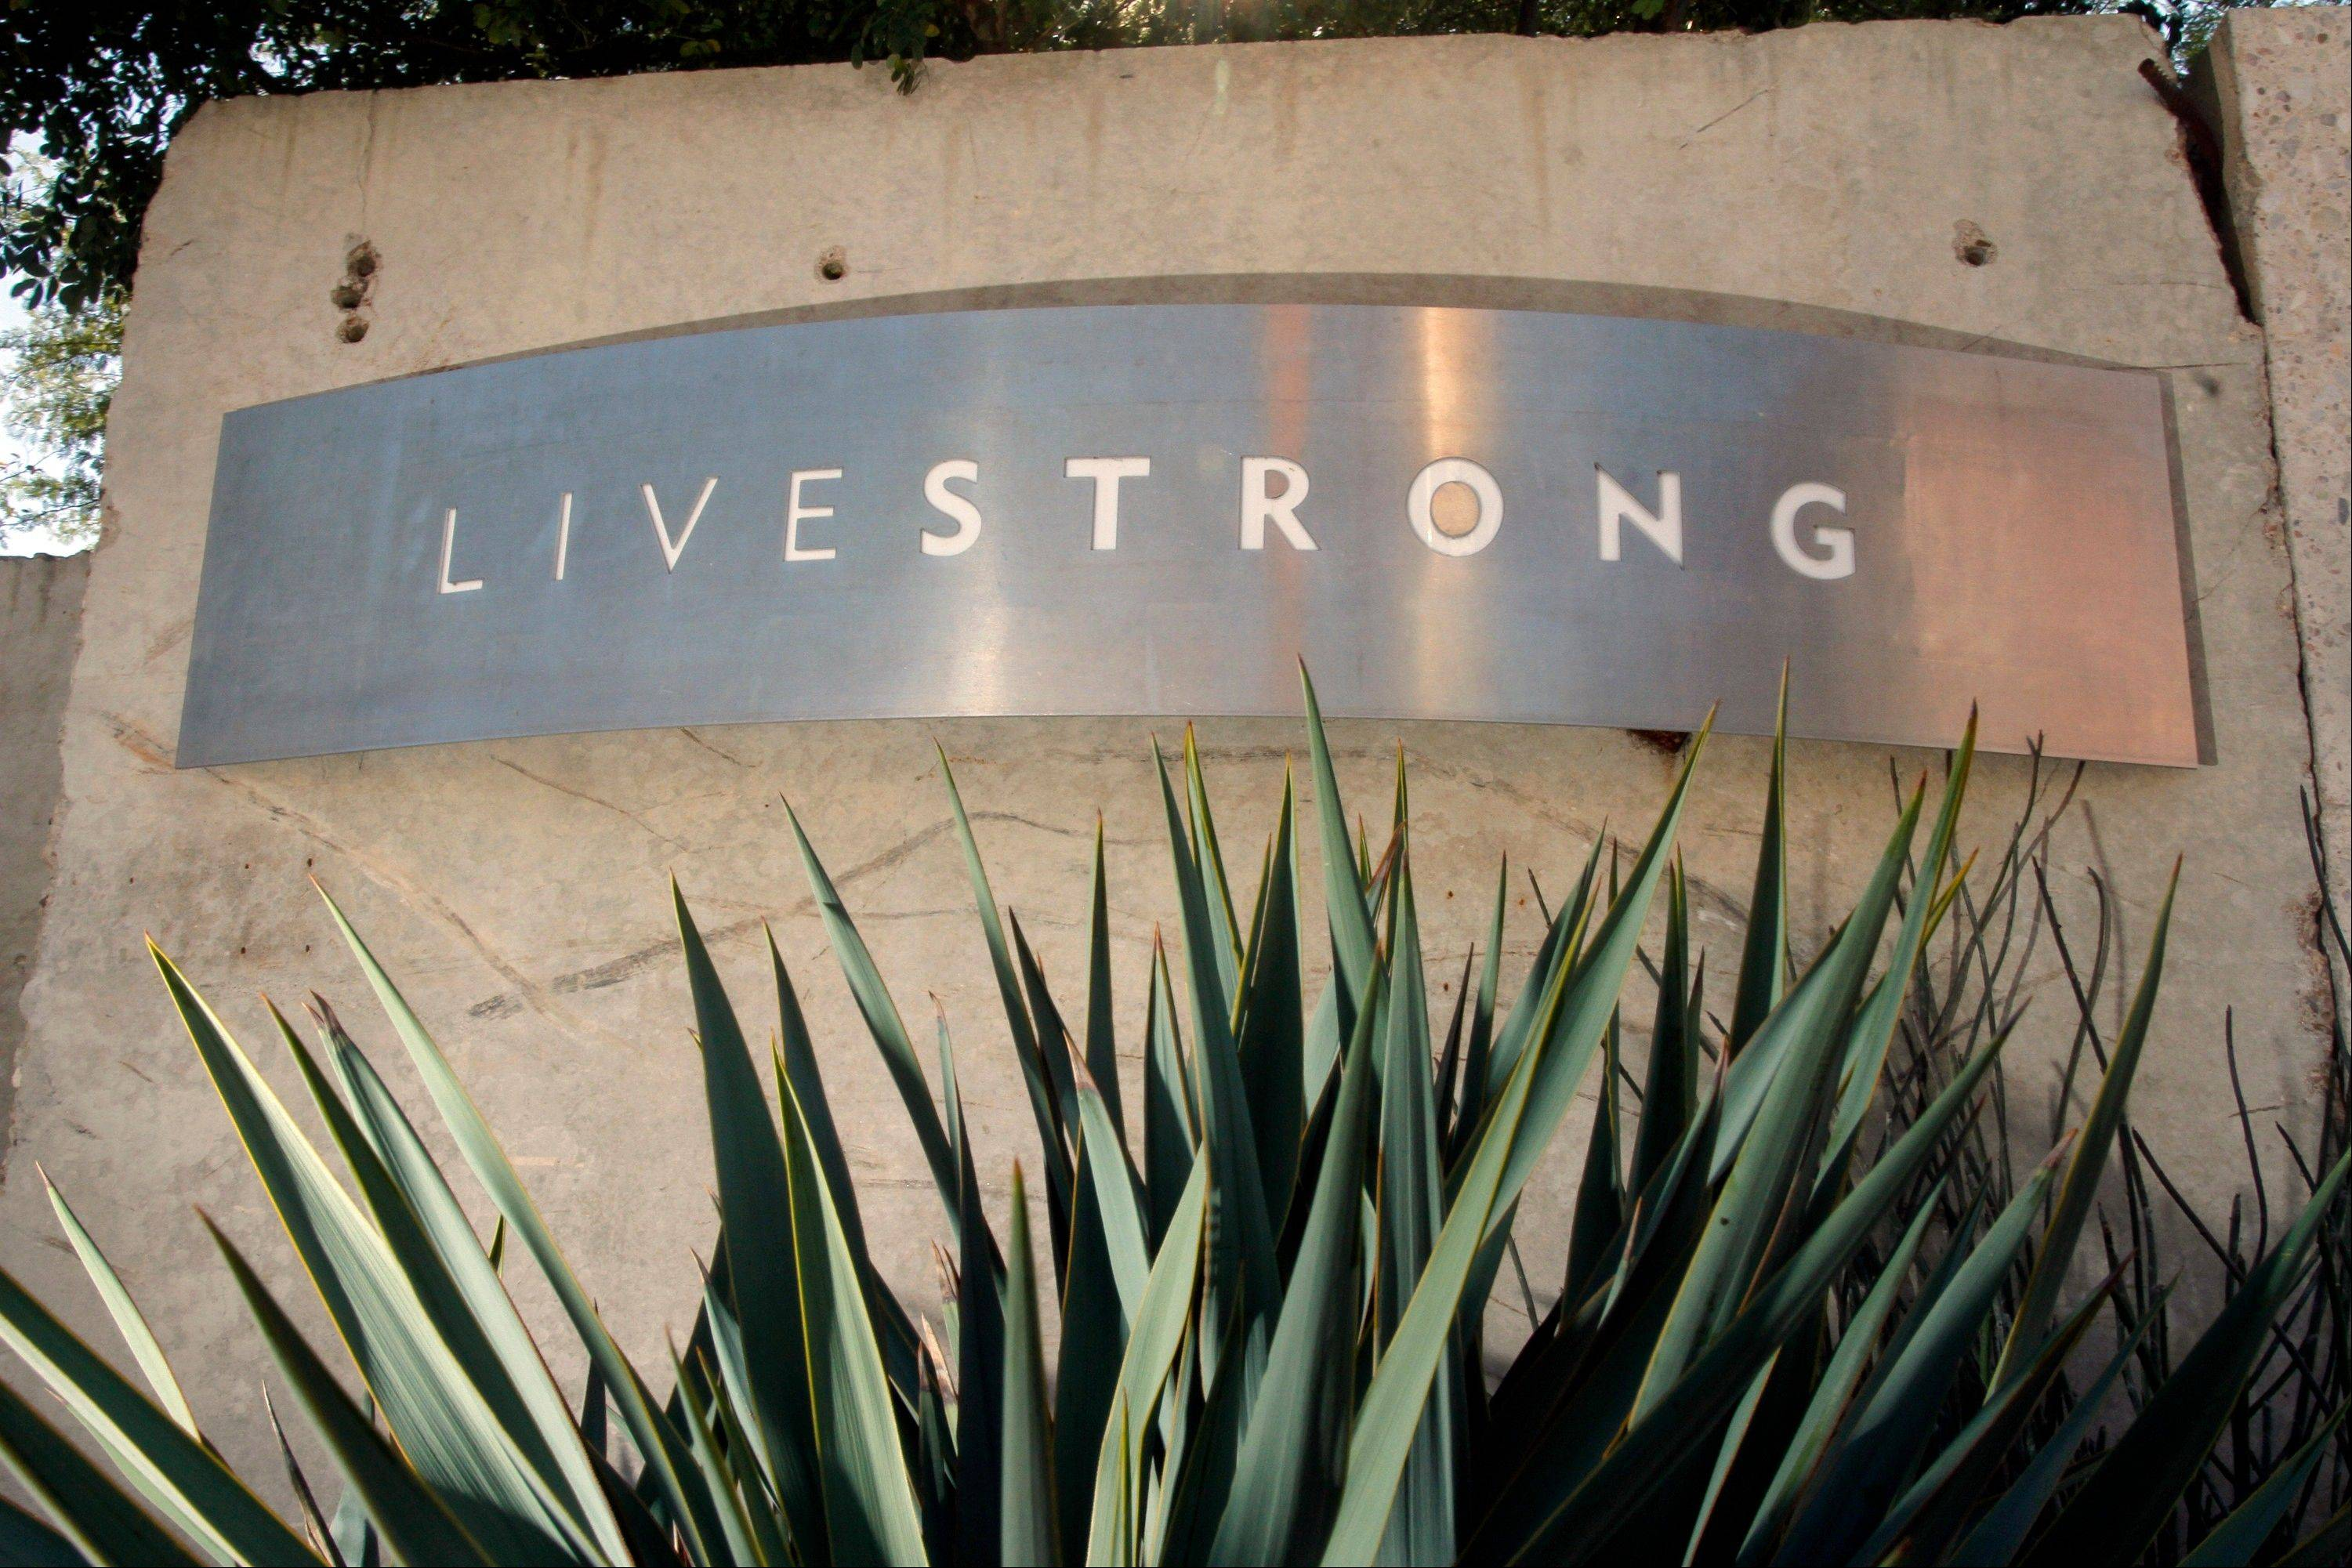 Signage for the Livestrong Foundation at the charity's headquarters in Austin, Texas. Nonprofits and charities are wary of any tax law provision that could limit the charitable deduction.